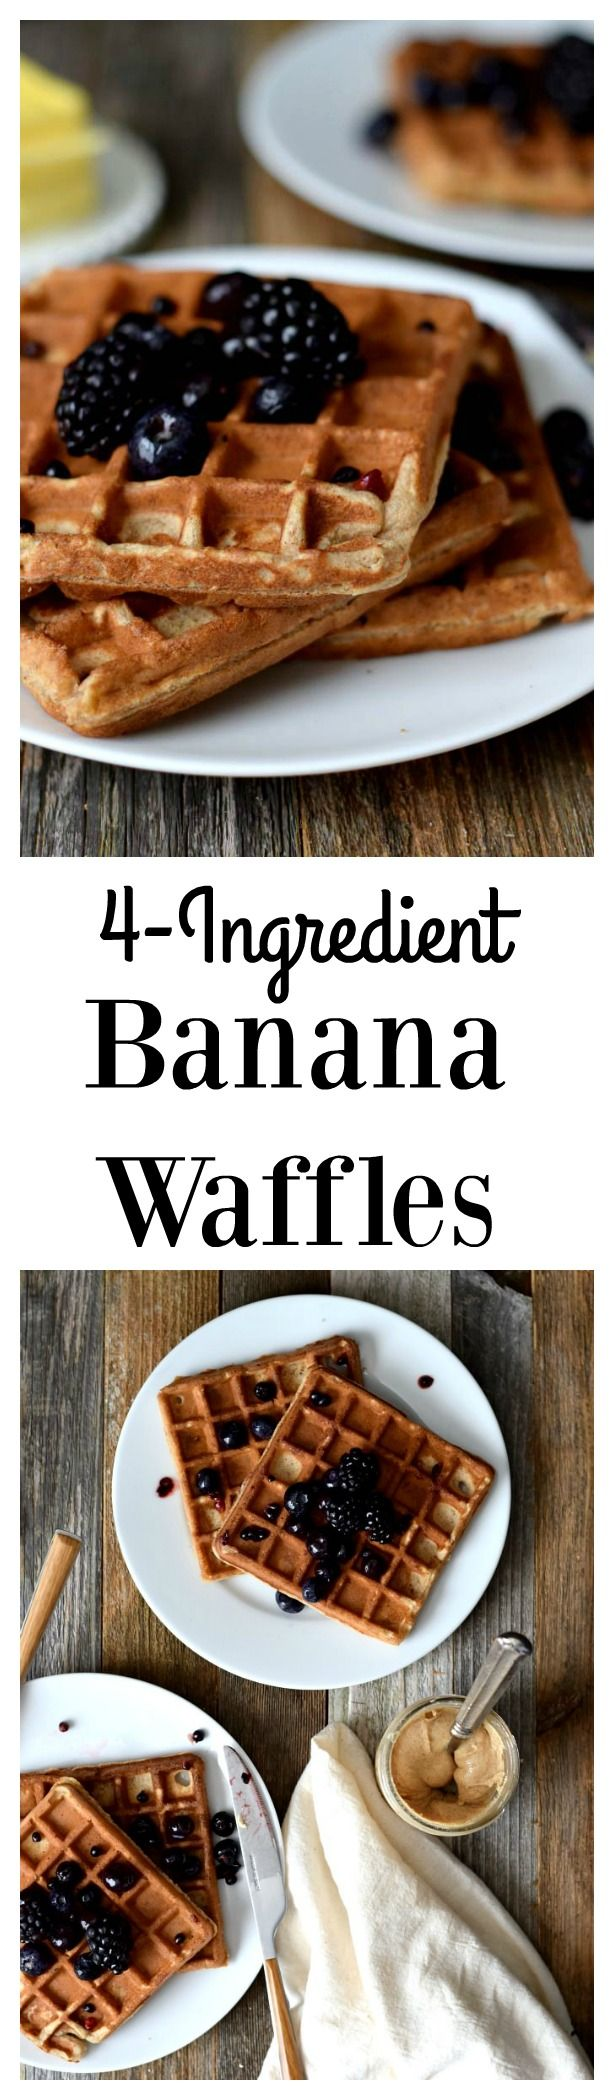 Flourless 4-Ingredient banana waffles: Just banana, eggs, nut butter and baking soda!